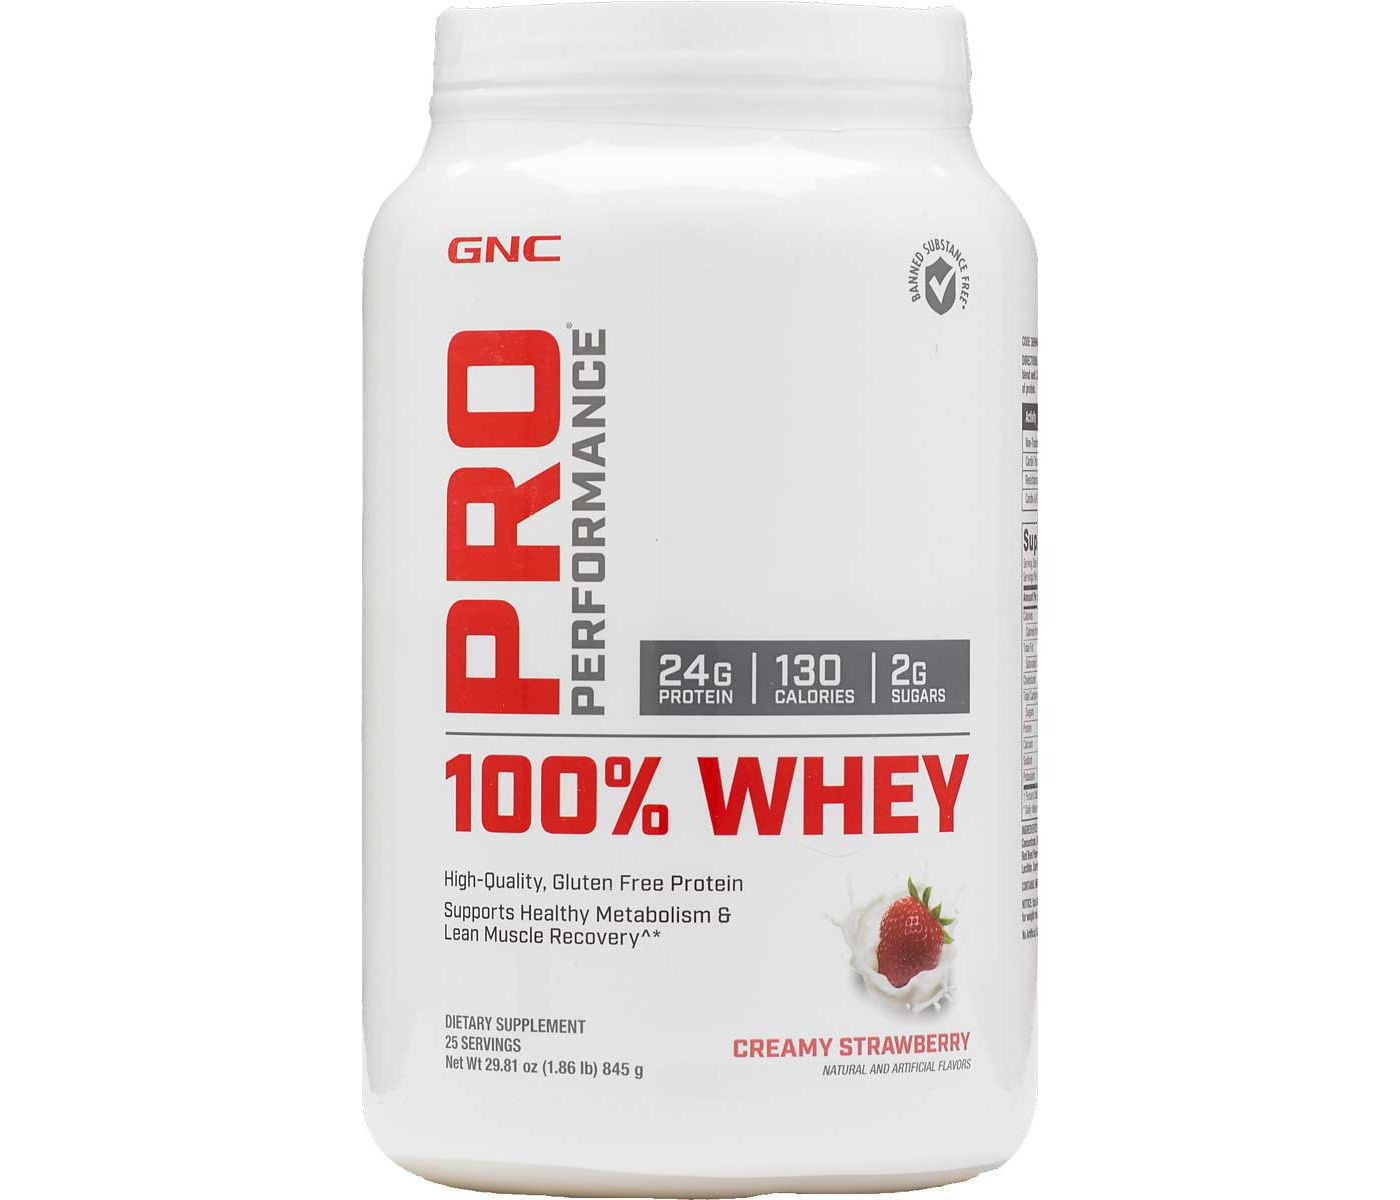 GNC Pro Performance 100% Whey Protein Creamy Strawberry 25 Servings